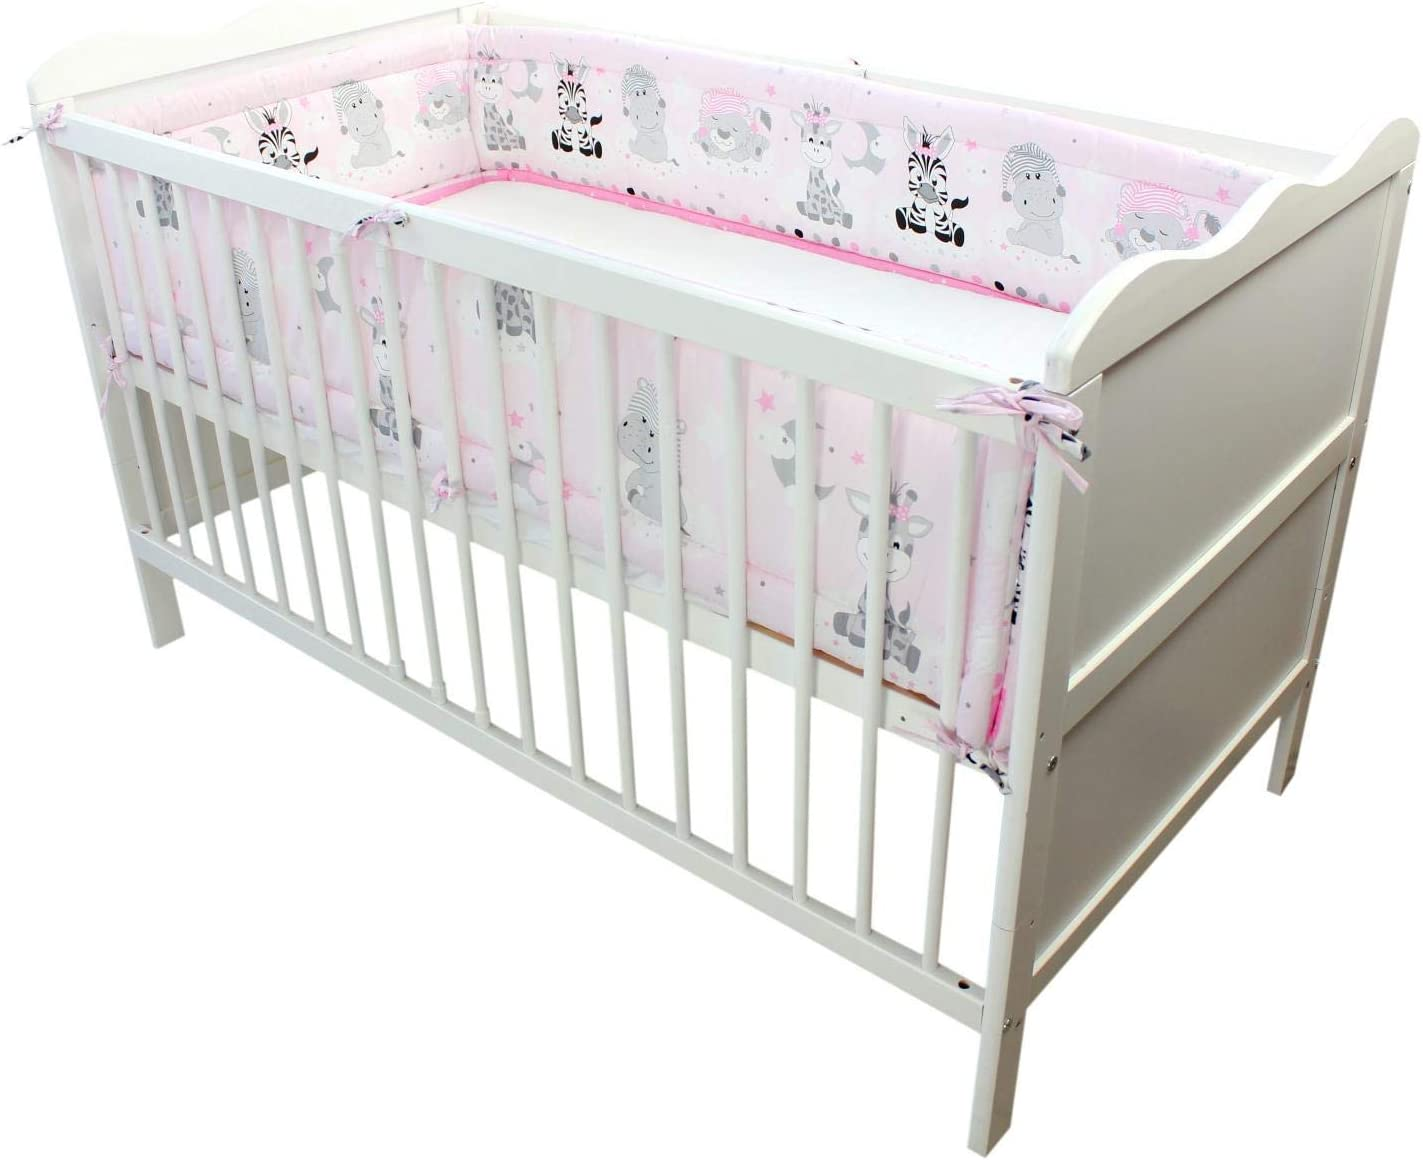 TupTam Baby Cot Bumper All Around Padded Bed Protection 420x30 cm Cot 140x70 cm Hearts 2 Pink